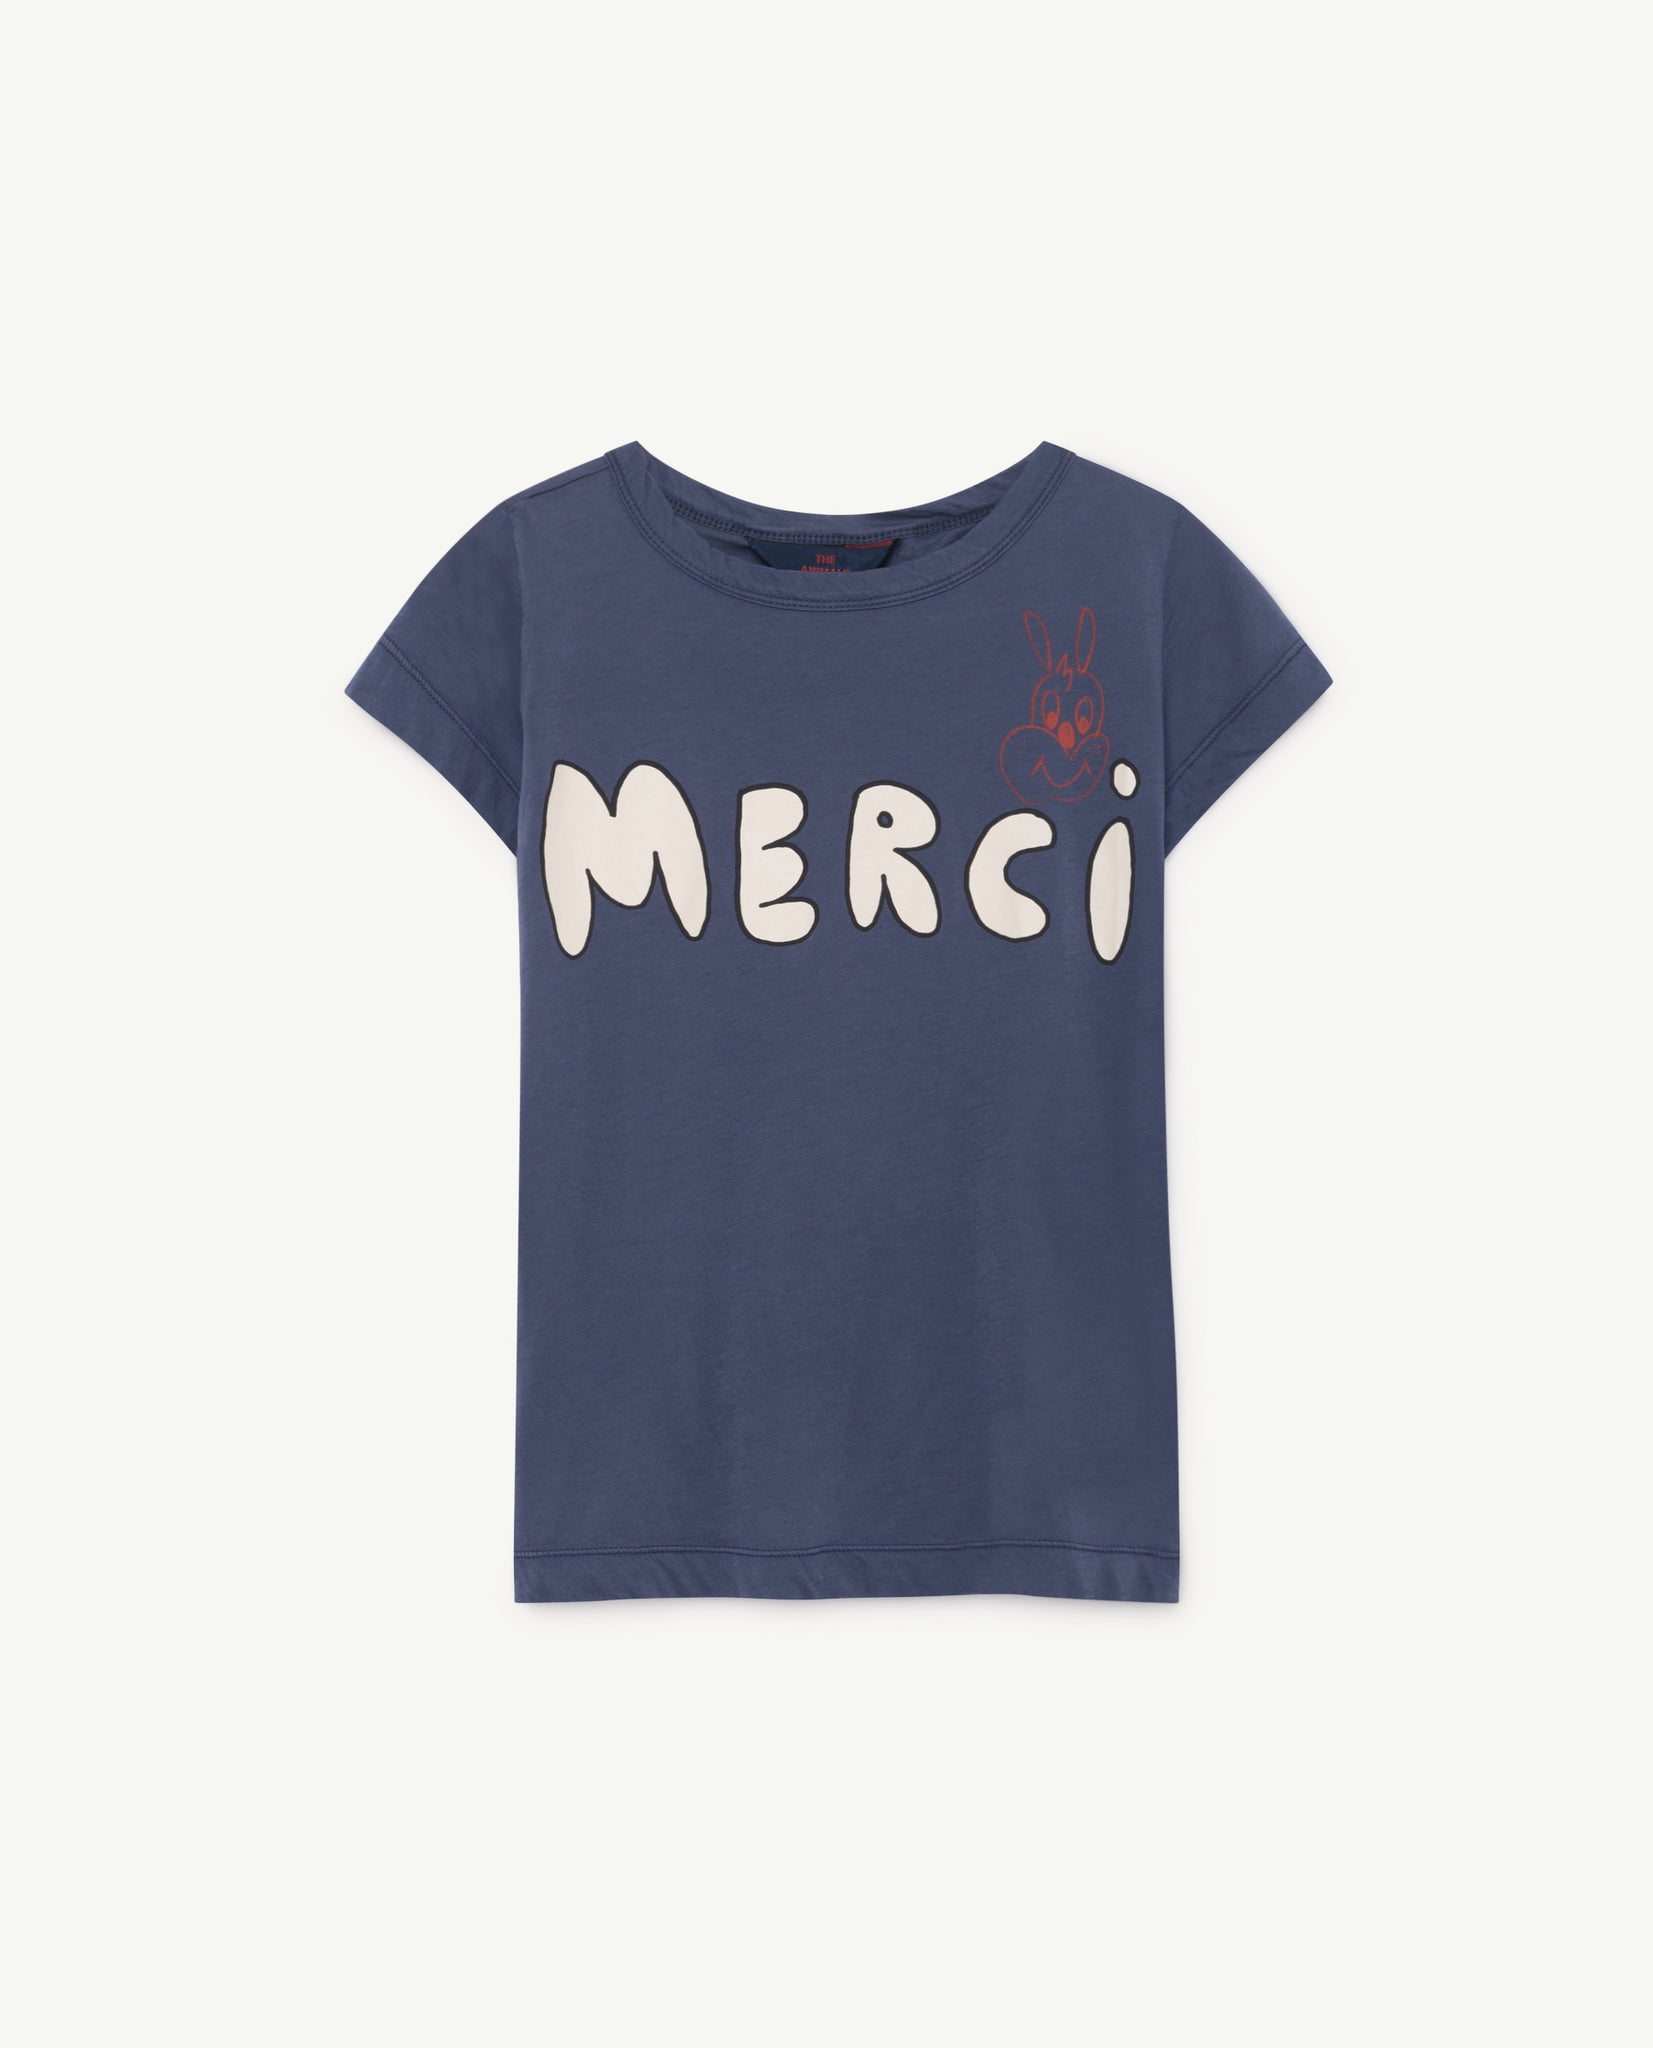 HIPPO KIDS T-SHIRT // BLUE MERCI